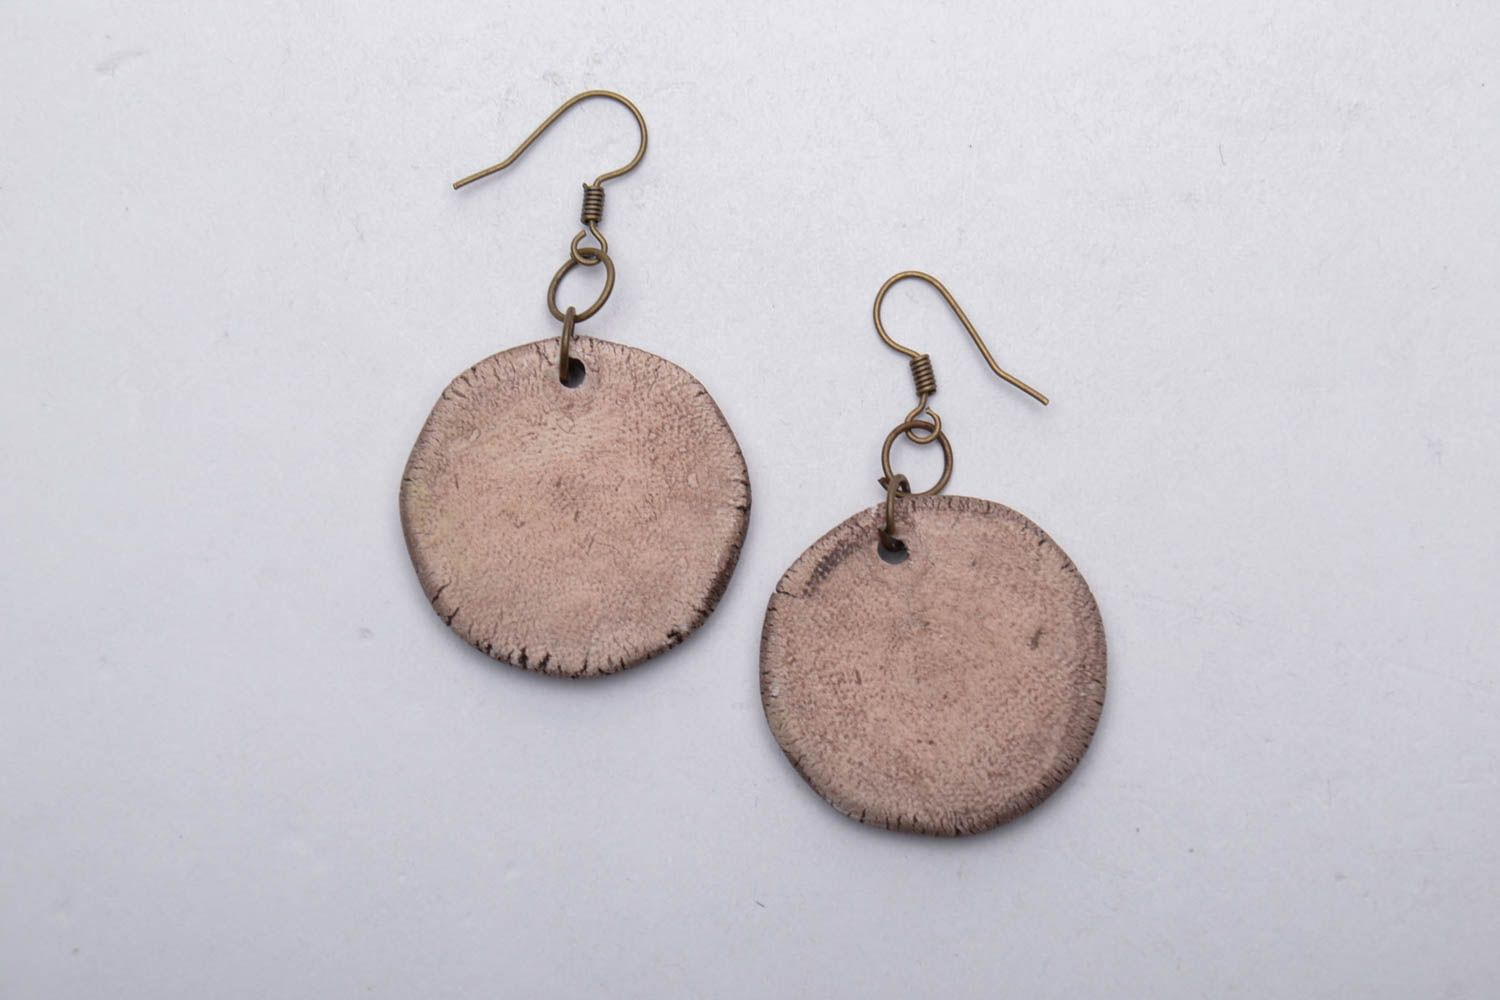 Ceramic earrings with charms photo 5